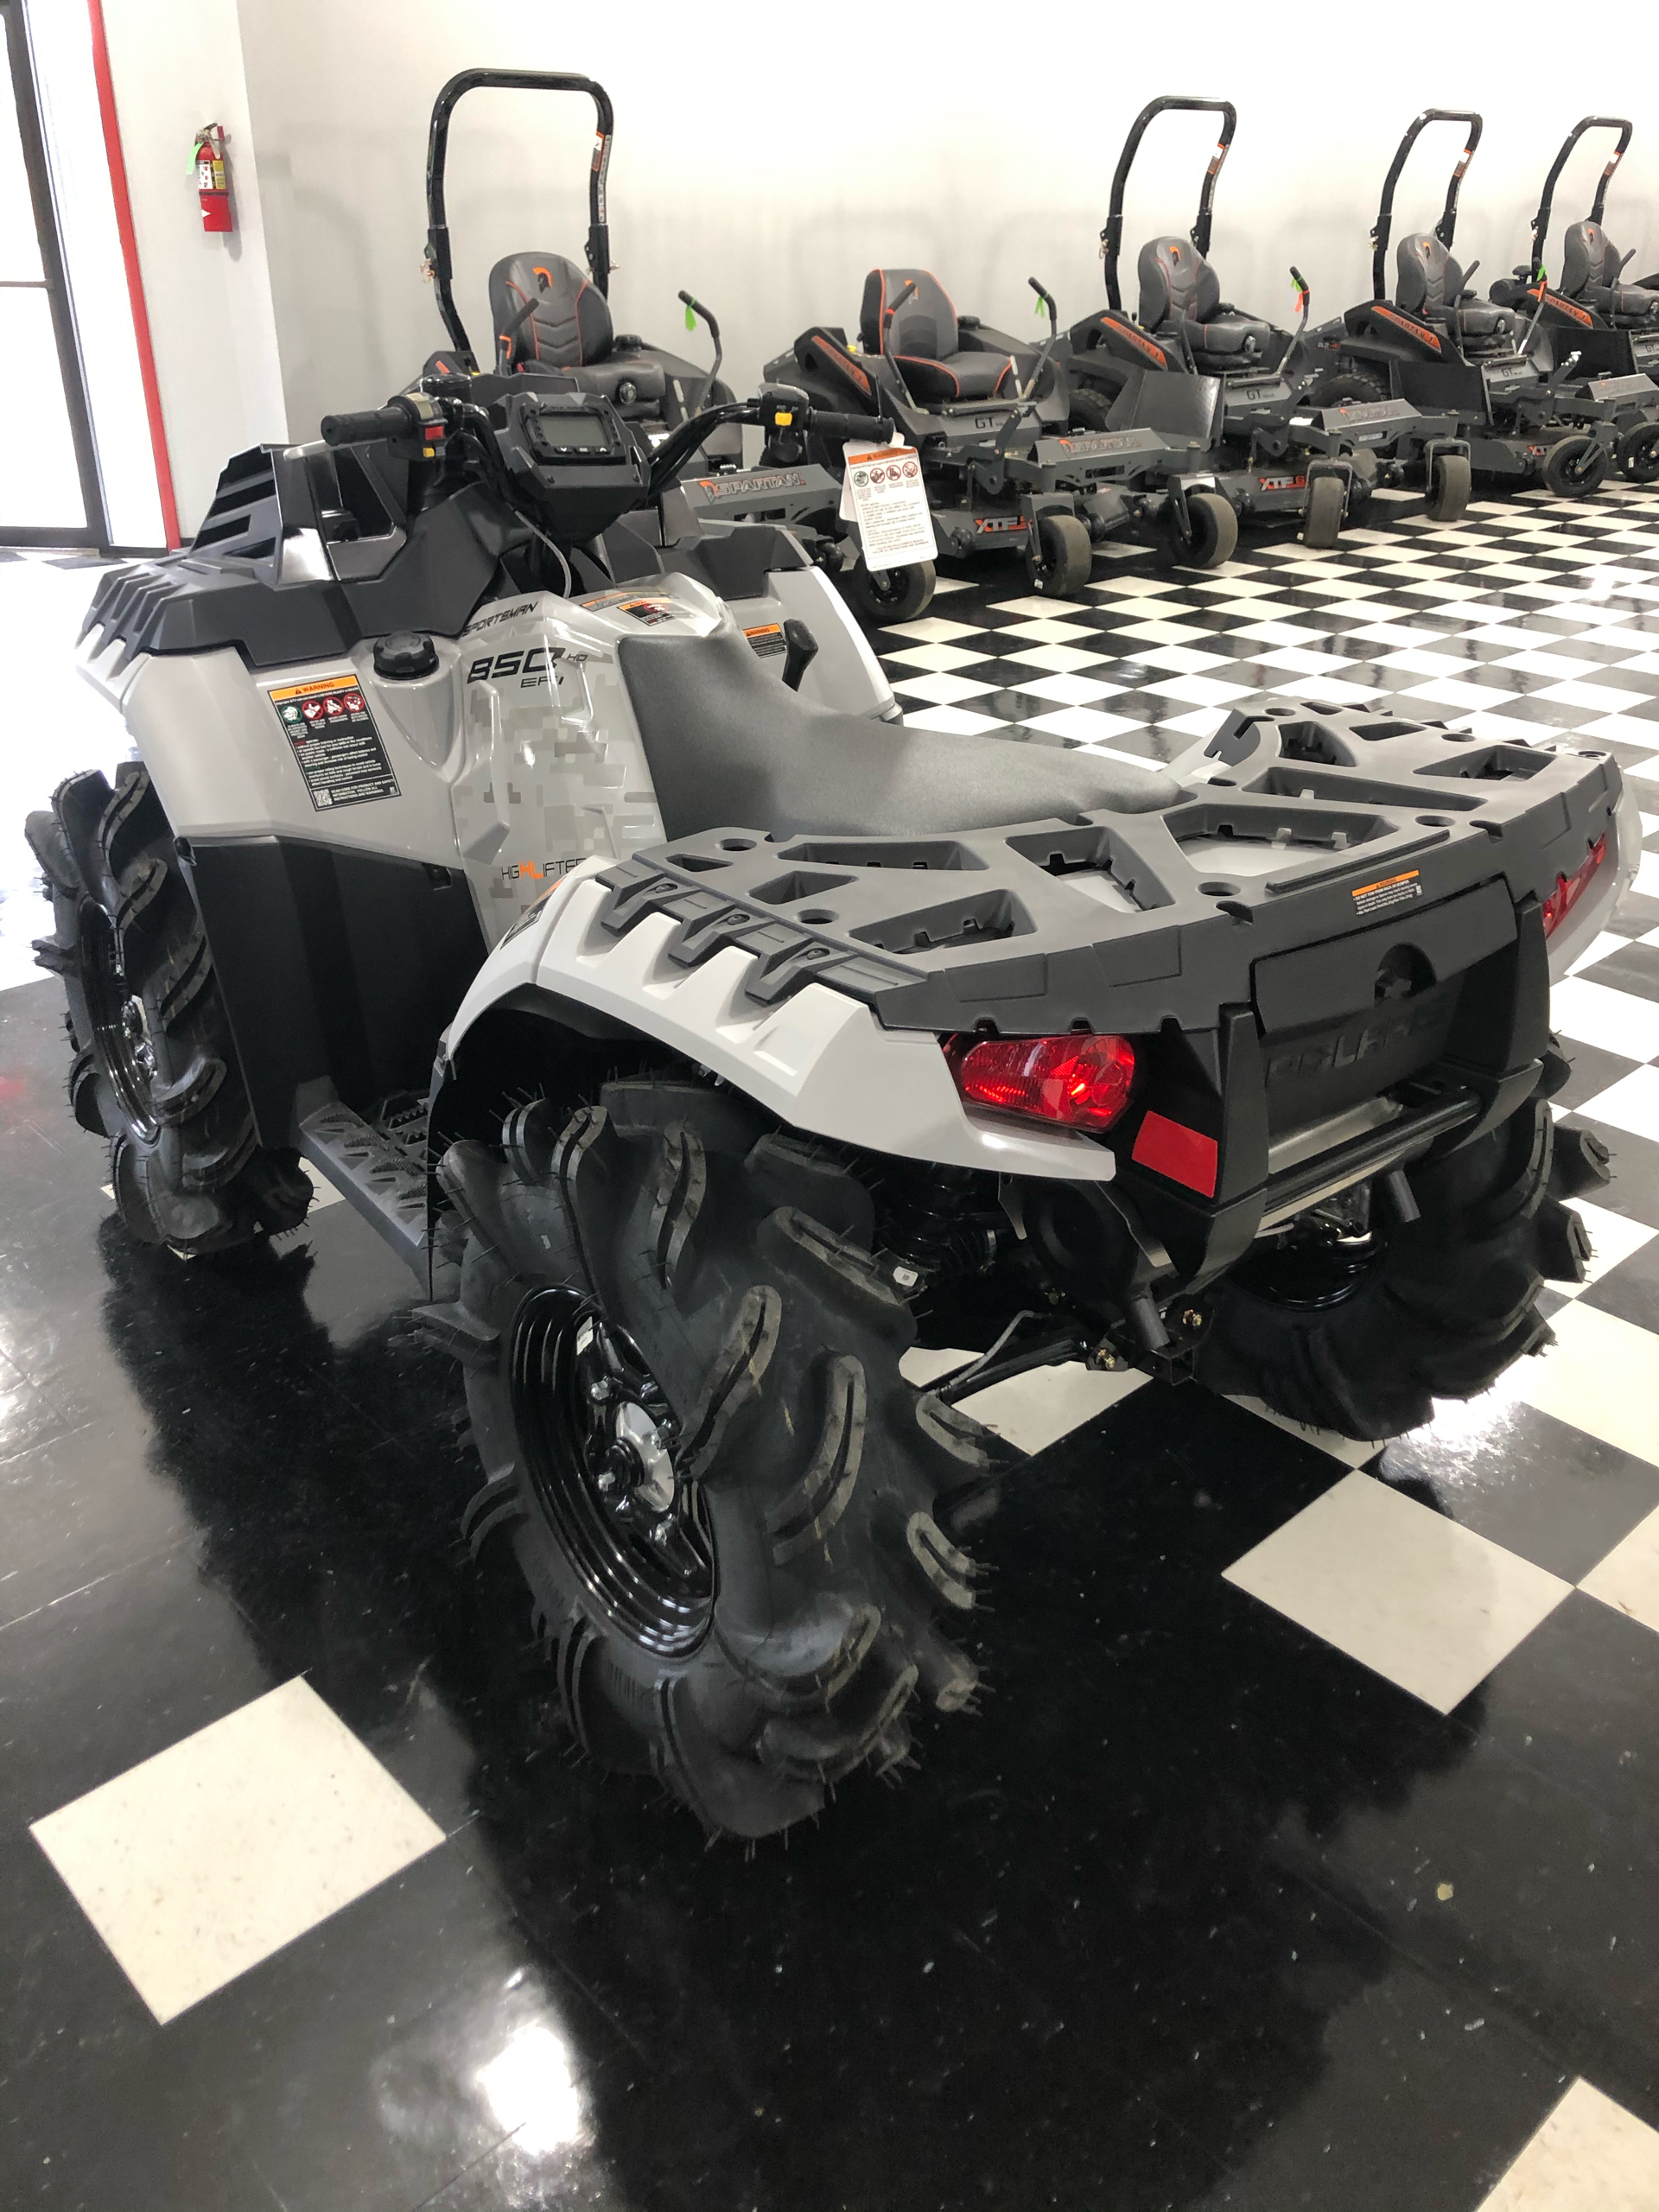 2021 Polaris Sportsman 850 High Lifter Edition in Lafayette, Louisiana - Photo 4